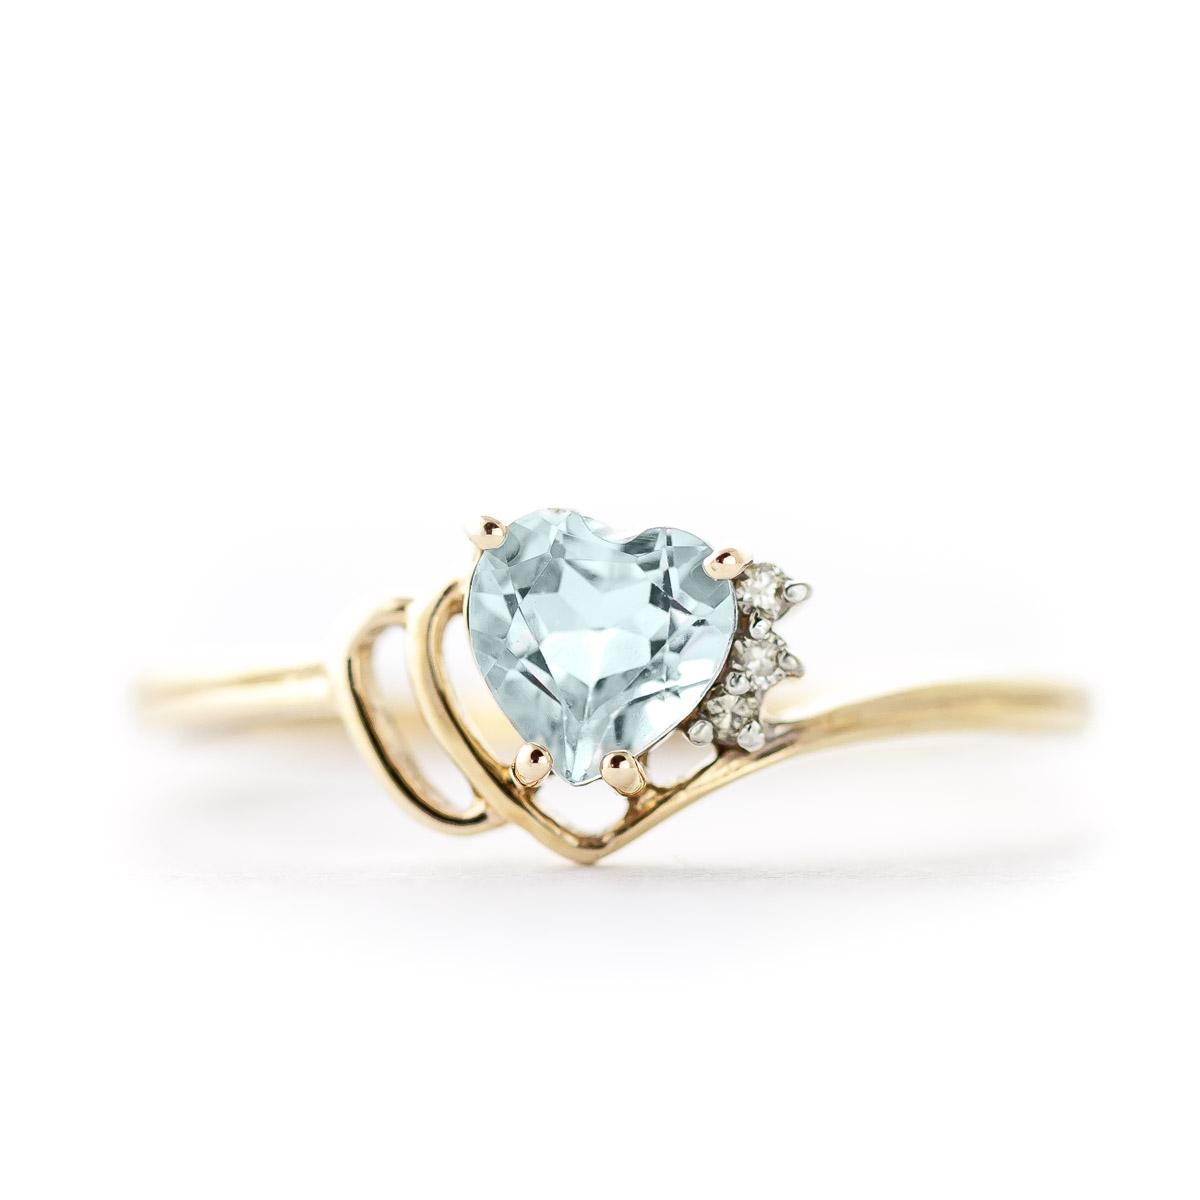 Aquamarine & Diamond Passion Ring in 9ct Gold